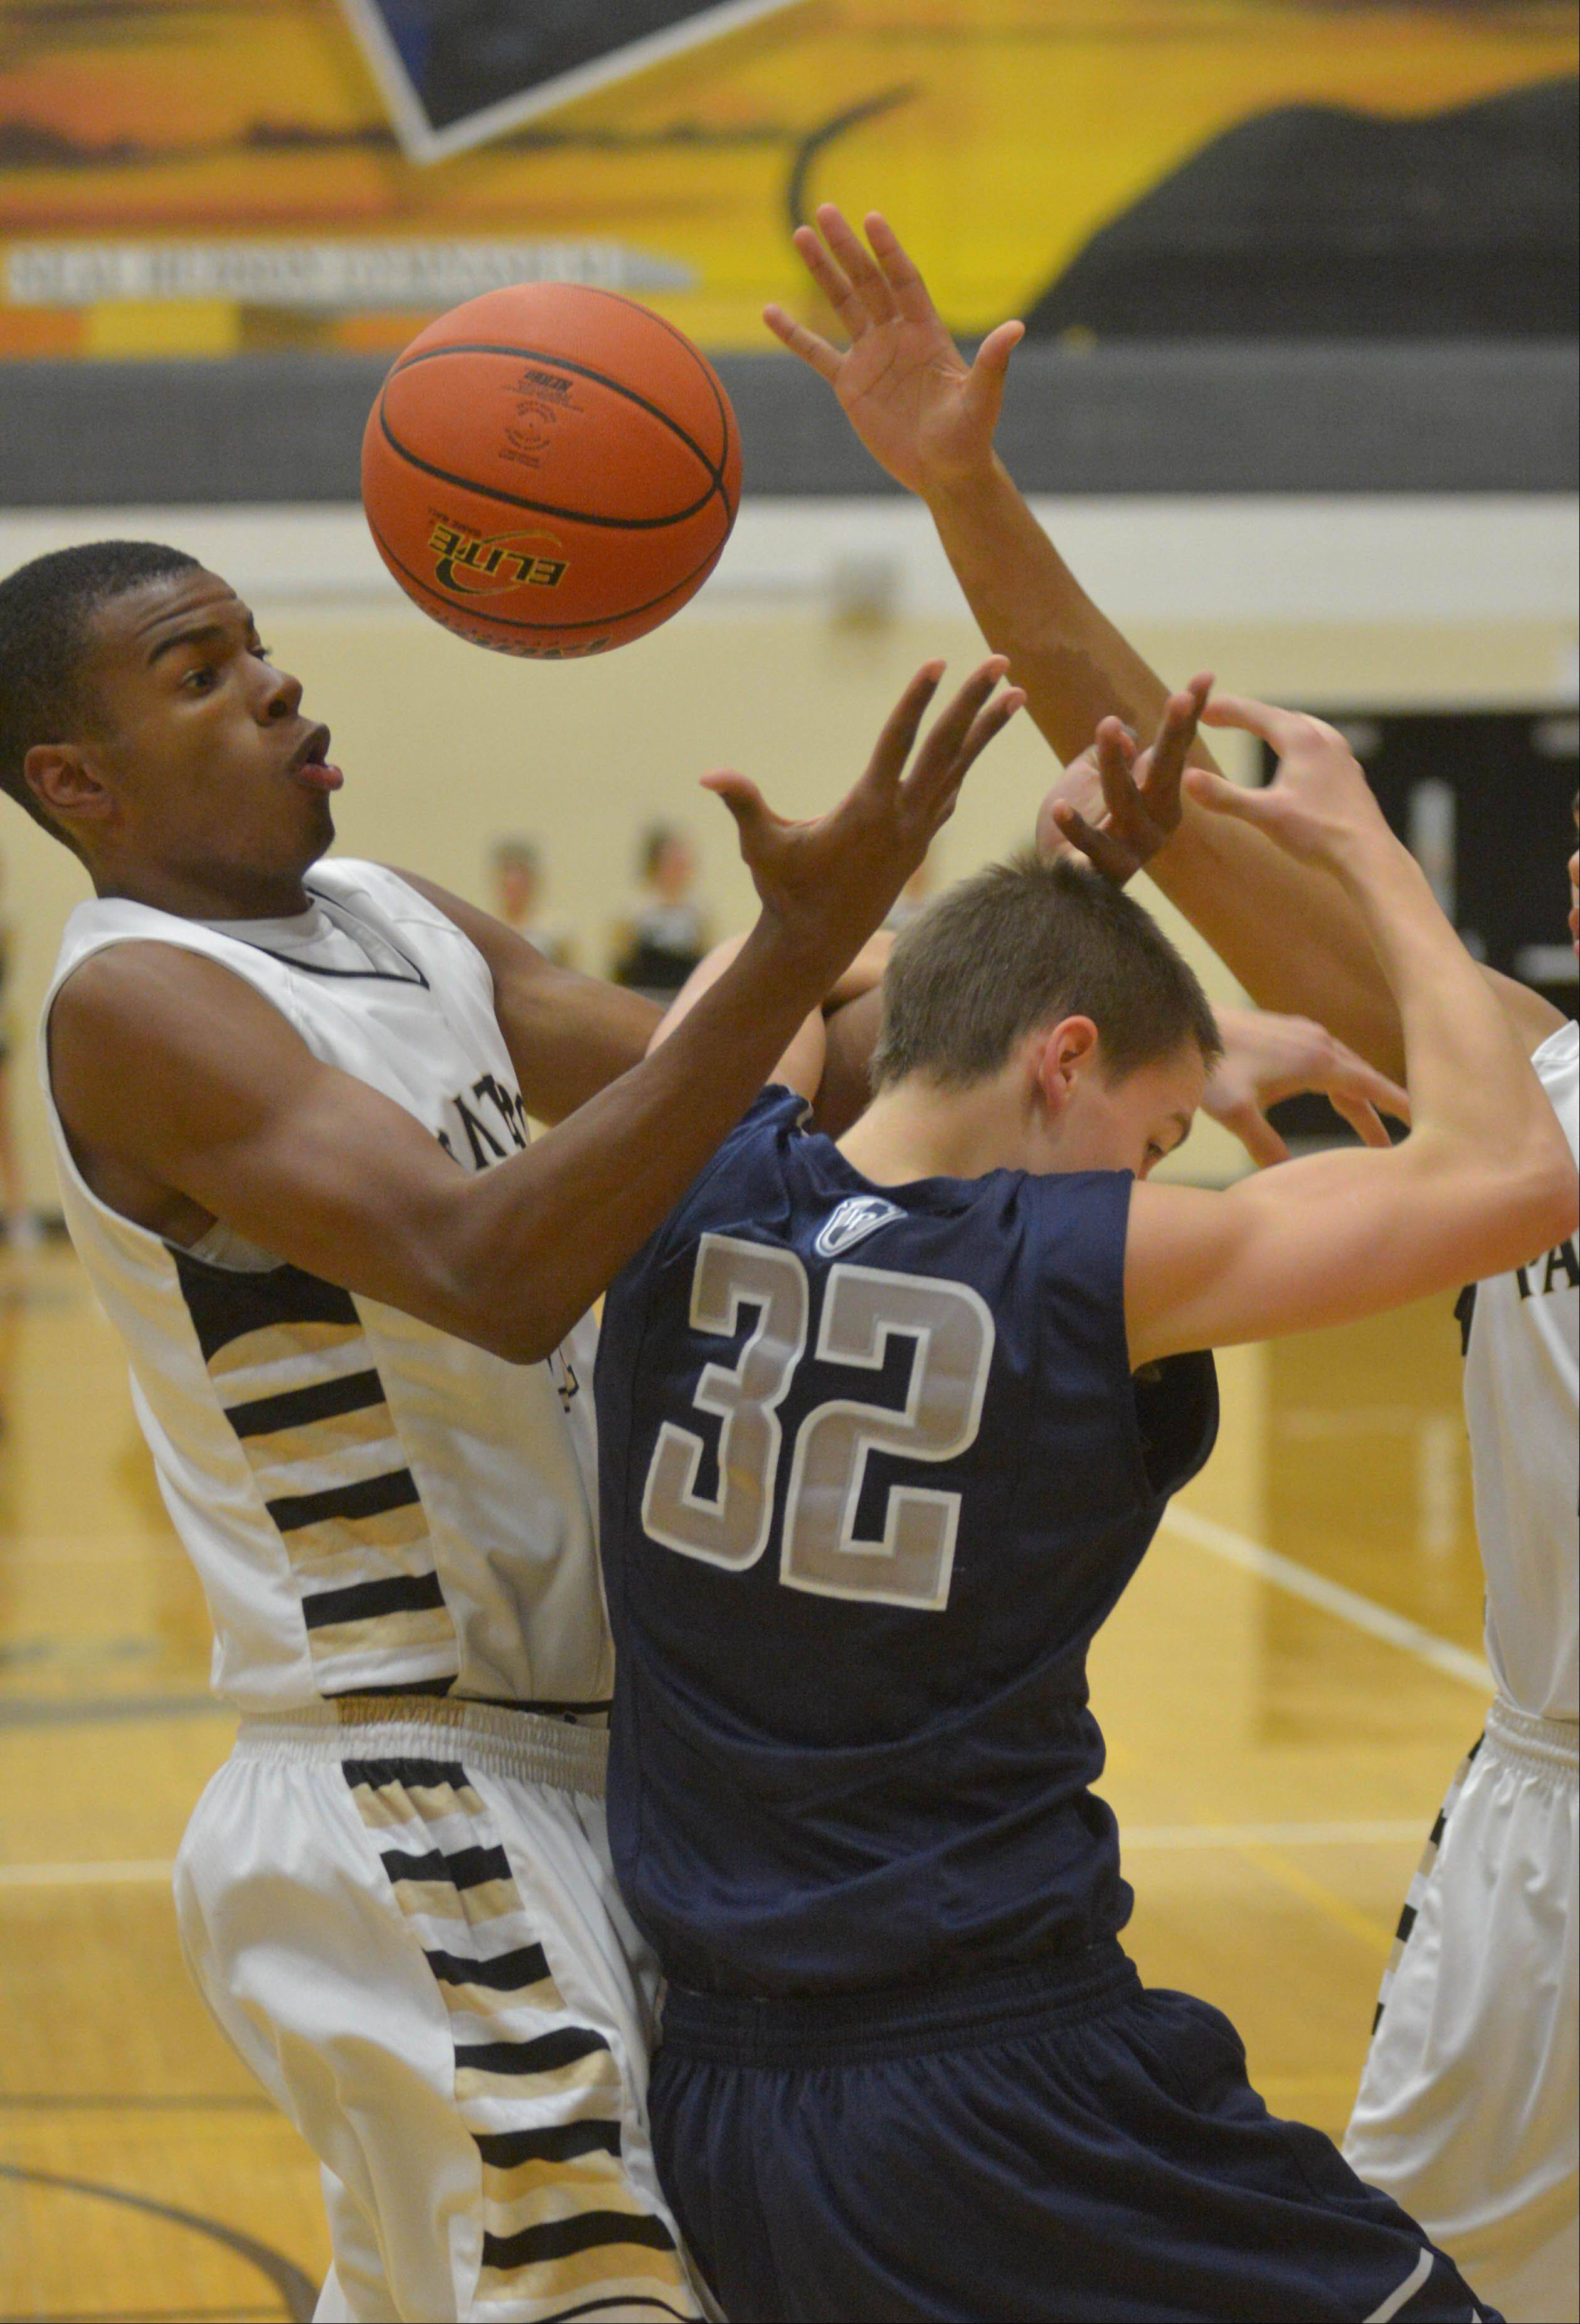 Chip Flanigan of Glenbard North and Connor Vance of Lake Park go for a rebound.